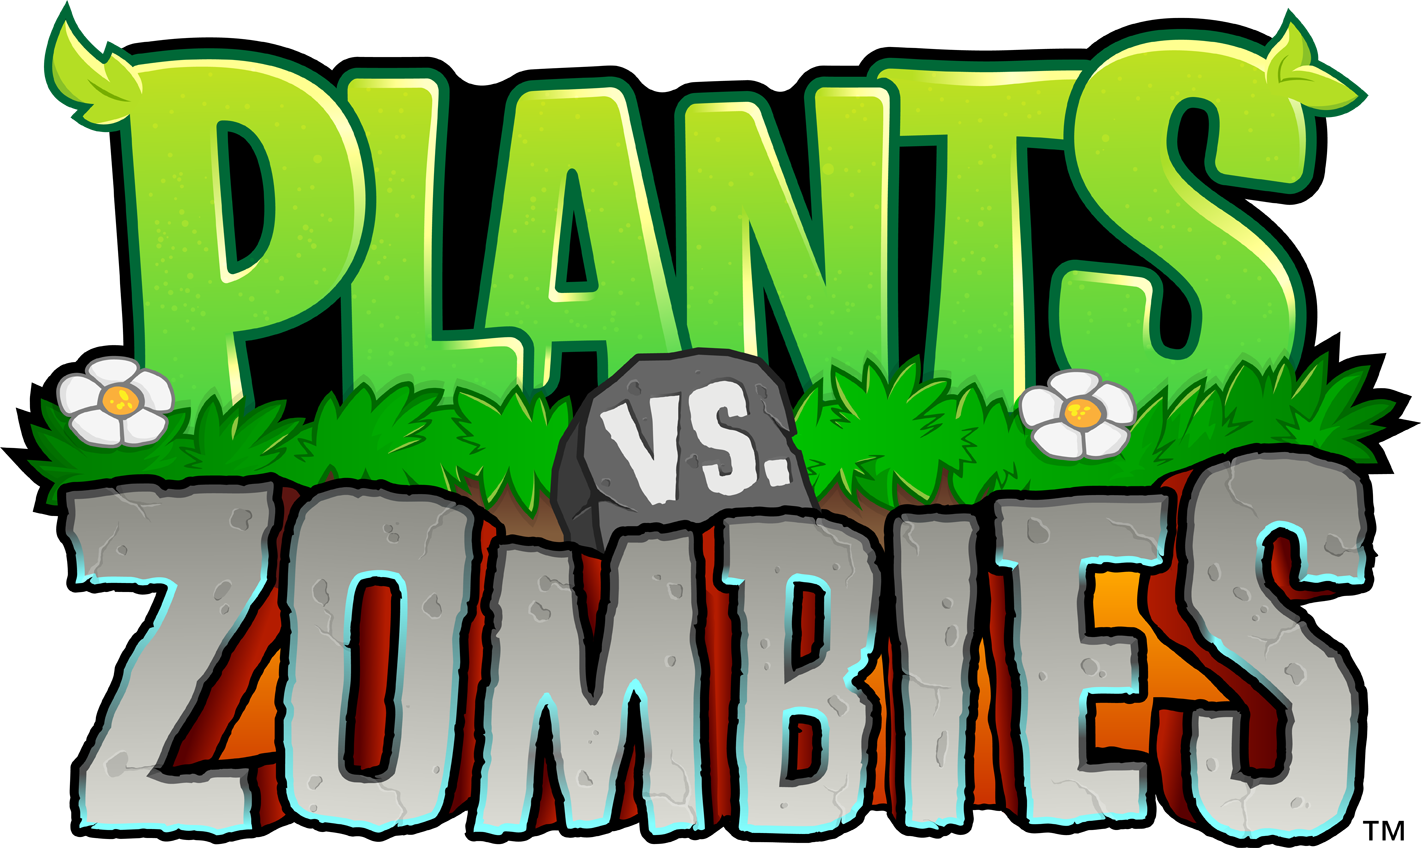 Plant vs Zombie for PC Free Download [ Highly Compressed 31Mb]